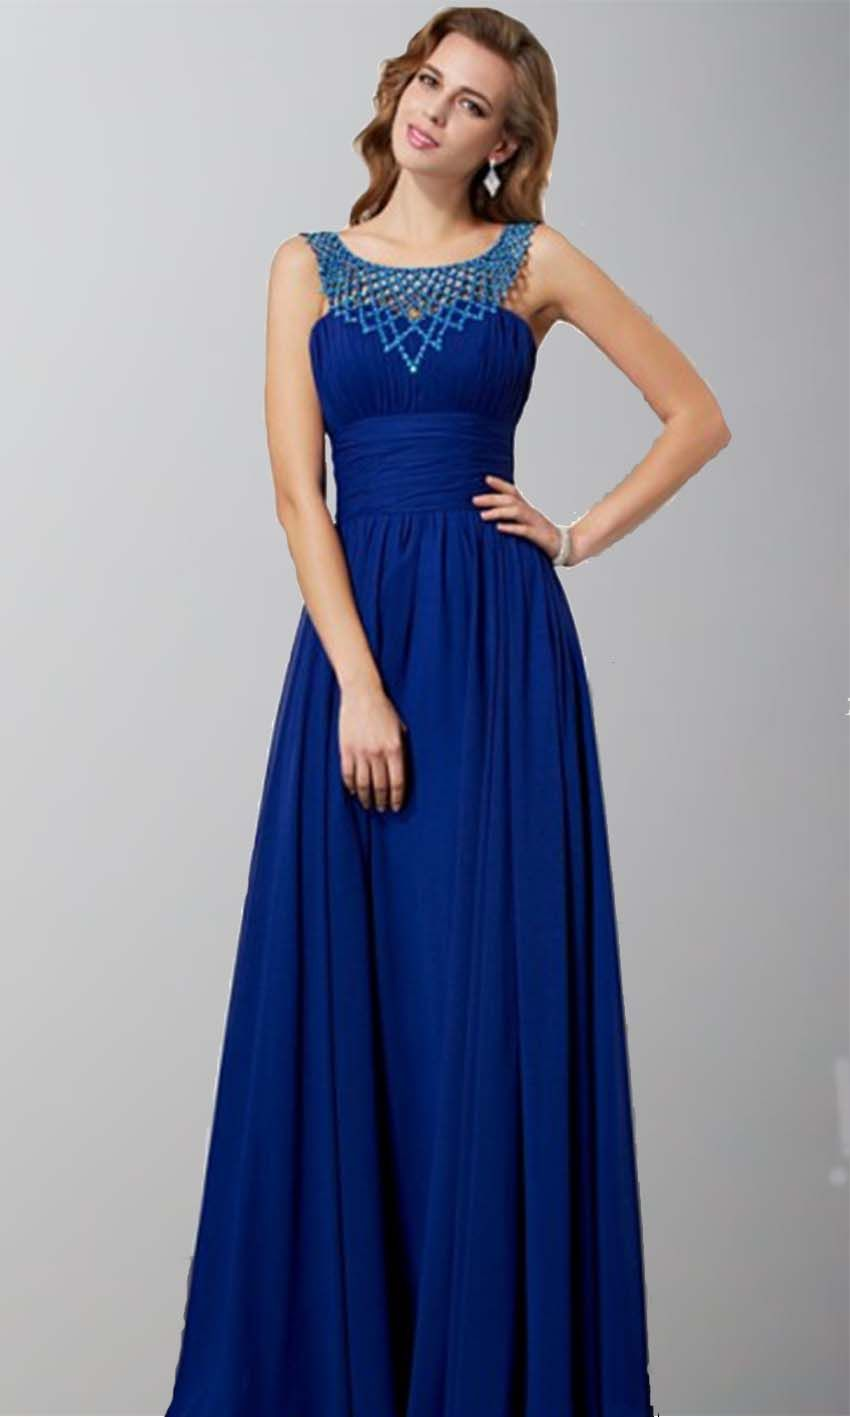 Blue-Prom-Dress-1-4 | Blue Prom Dress | Pinterest